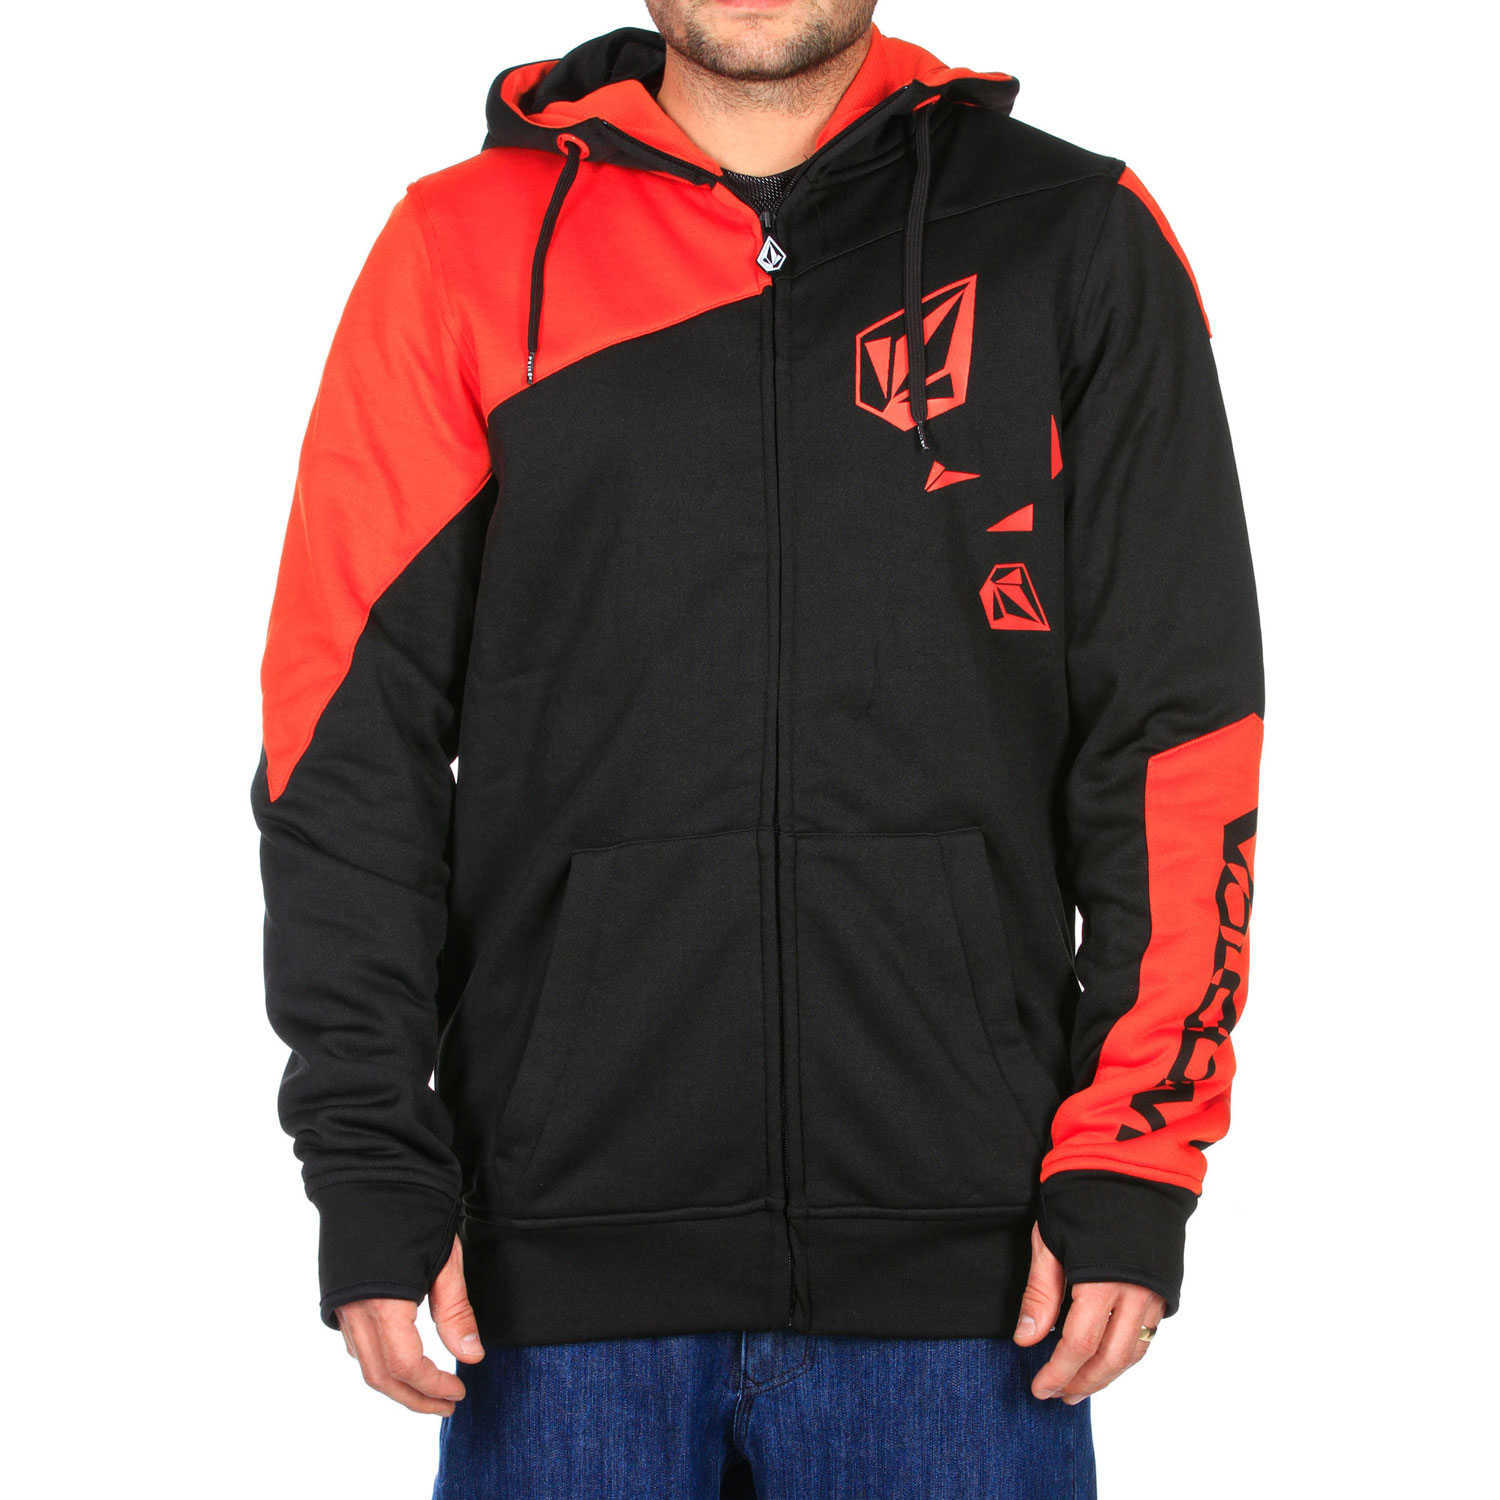 Surf Key Features of the Volcom Vip Hydro Hoodie: 280 gm Hydro Fleece Mesh Lined Zip Tech Jacket to Pant Interface Face Tech Cuff Thumbhole Ribbed Cuff Ribbed Hem Zippered Hand Pockets Drawcord Hood Cinch Whistle Zipper Pull Stone Screen Stone Woven Label Volcom Screen Standard Fit - $110.00